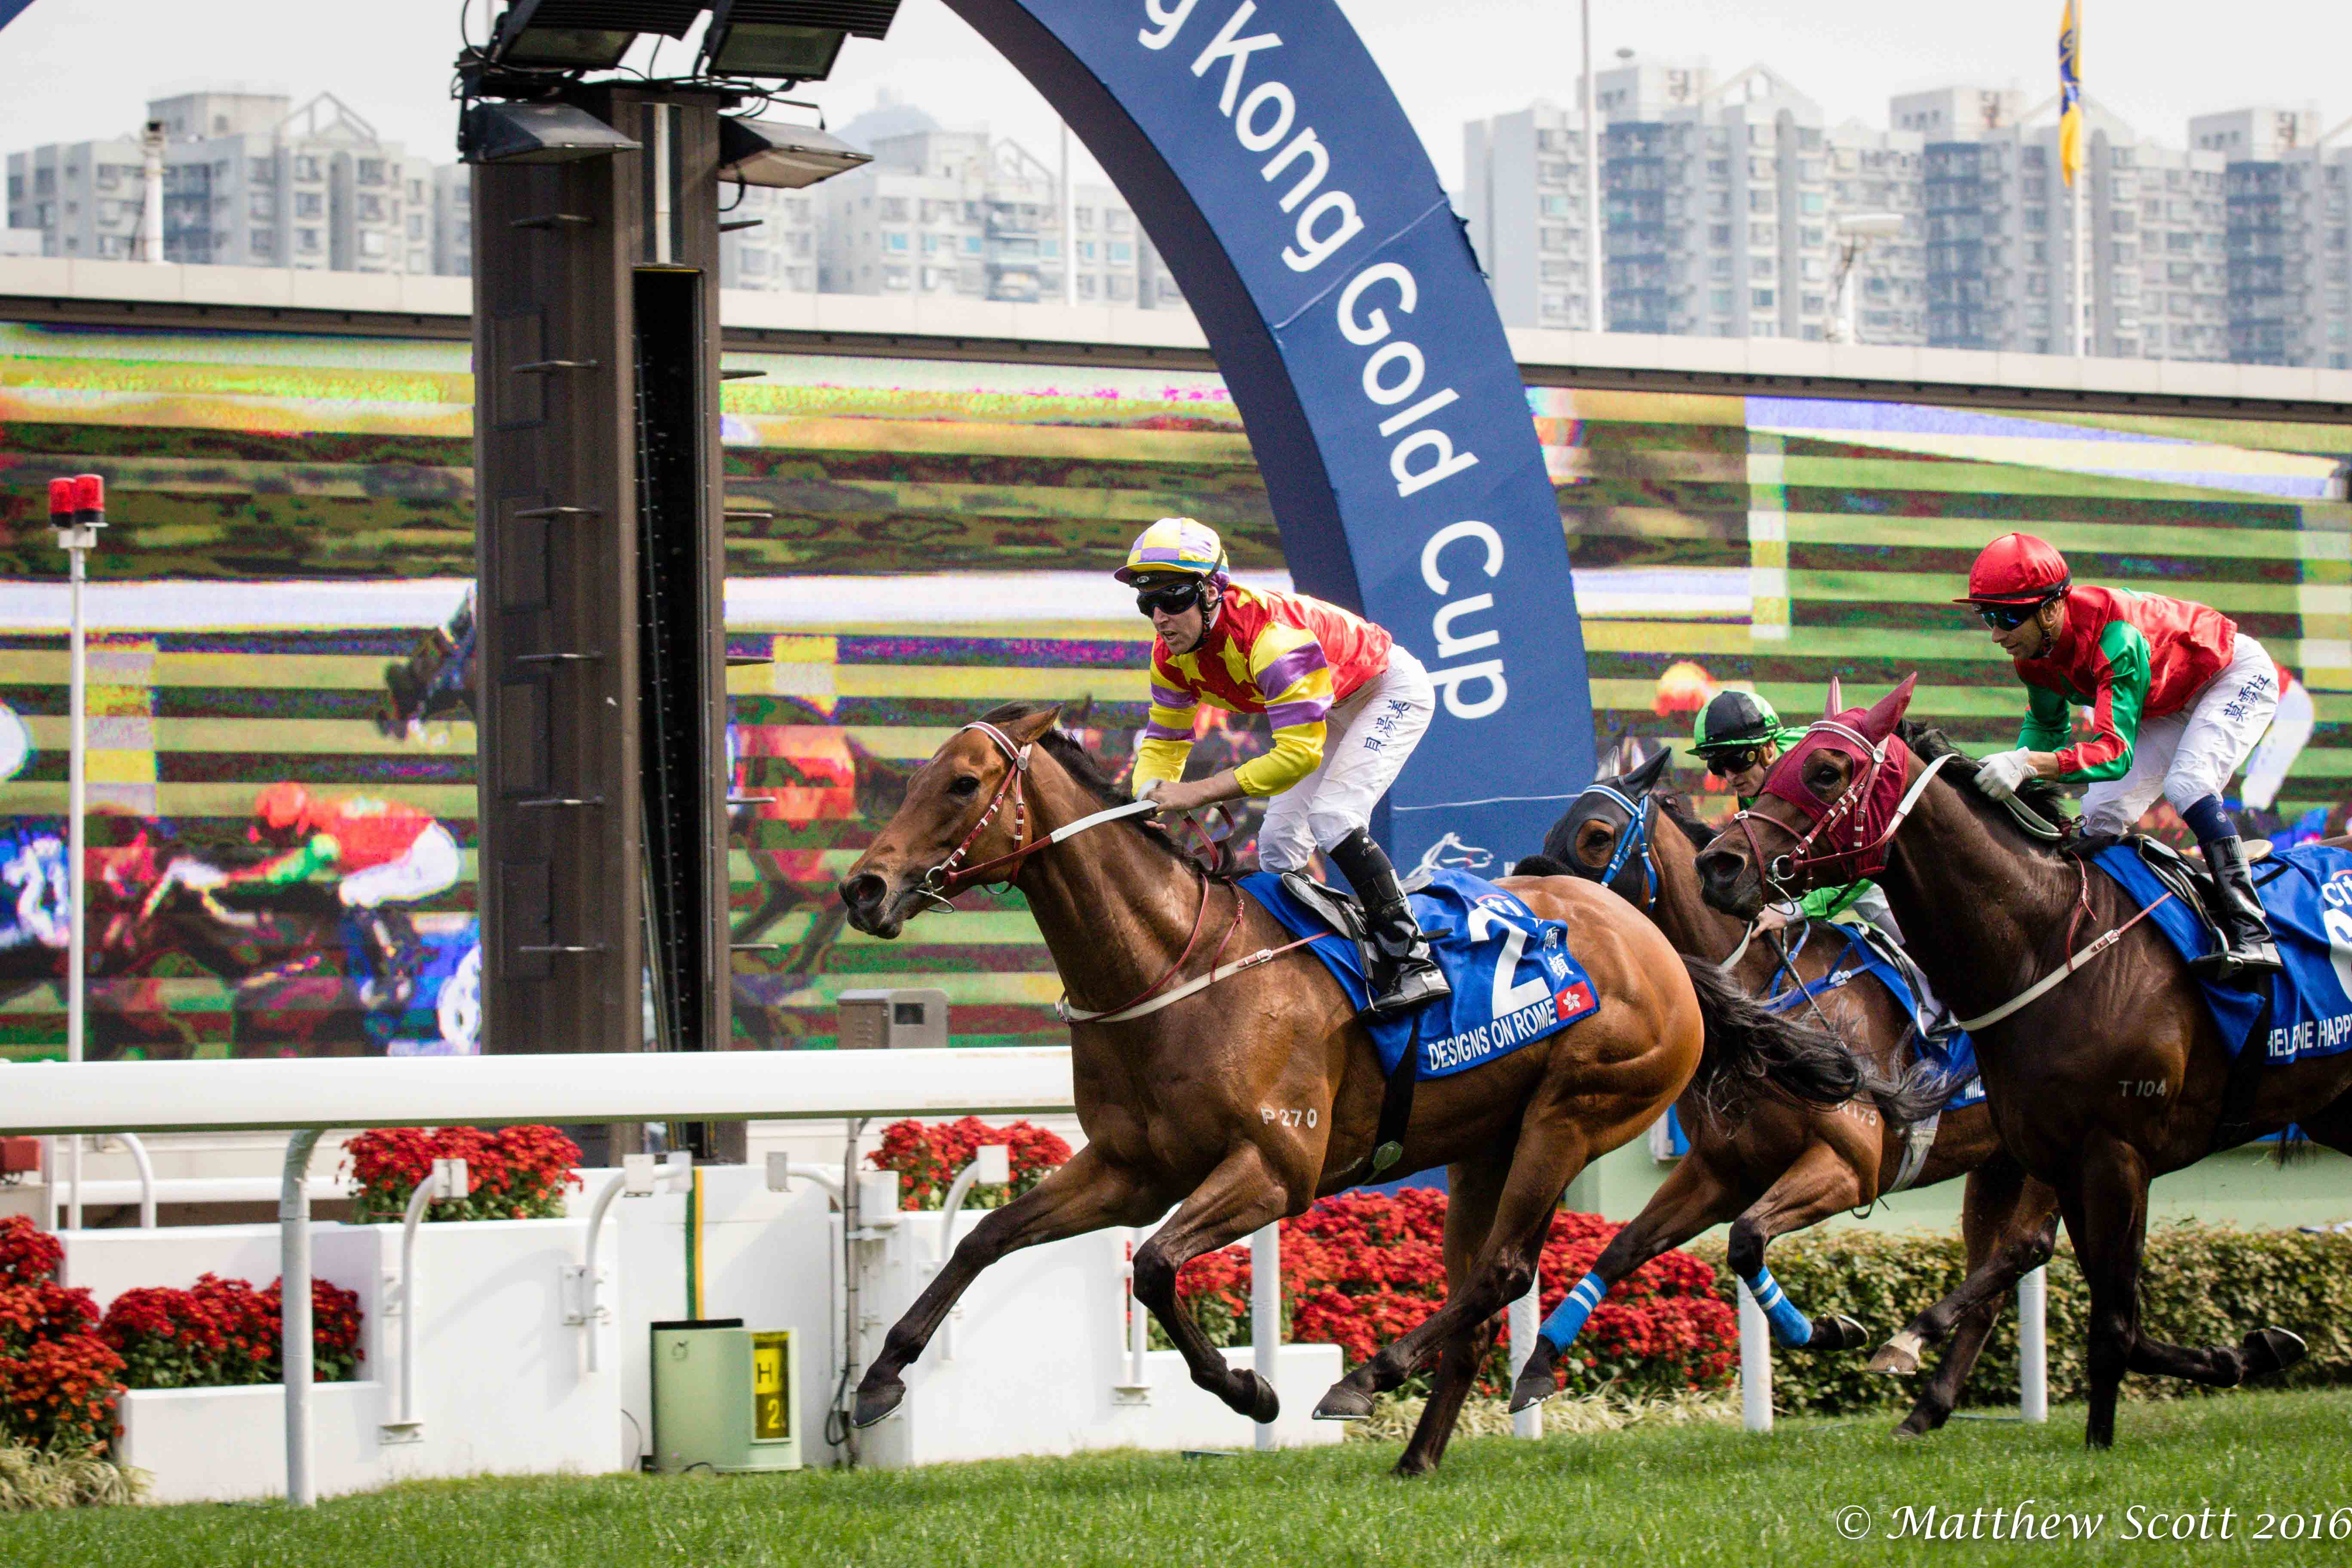 Designs on rome repeats in hong kong gold cup 55000 furlongs to it had been a rough season for the 6 year old gelded son of holy roman emperor after a failed trip to dubai last spring and coming up flat in the apqeii falaconquin